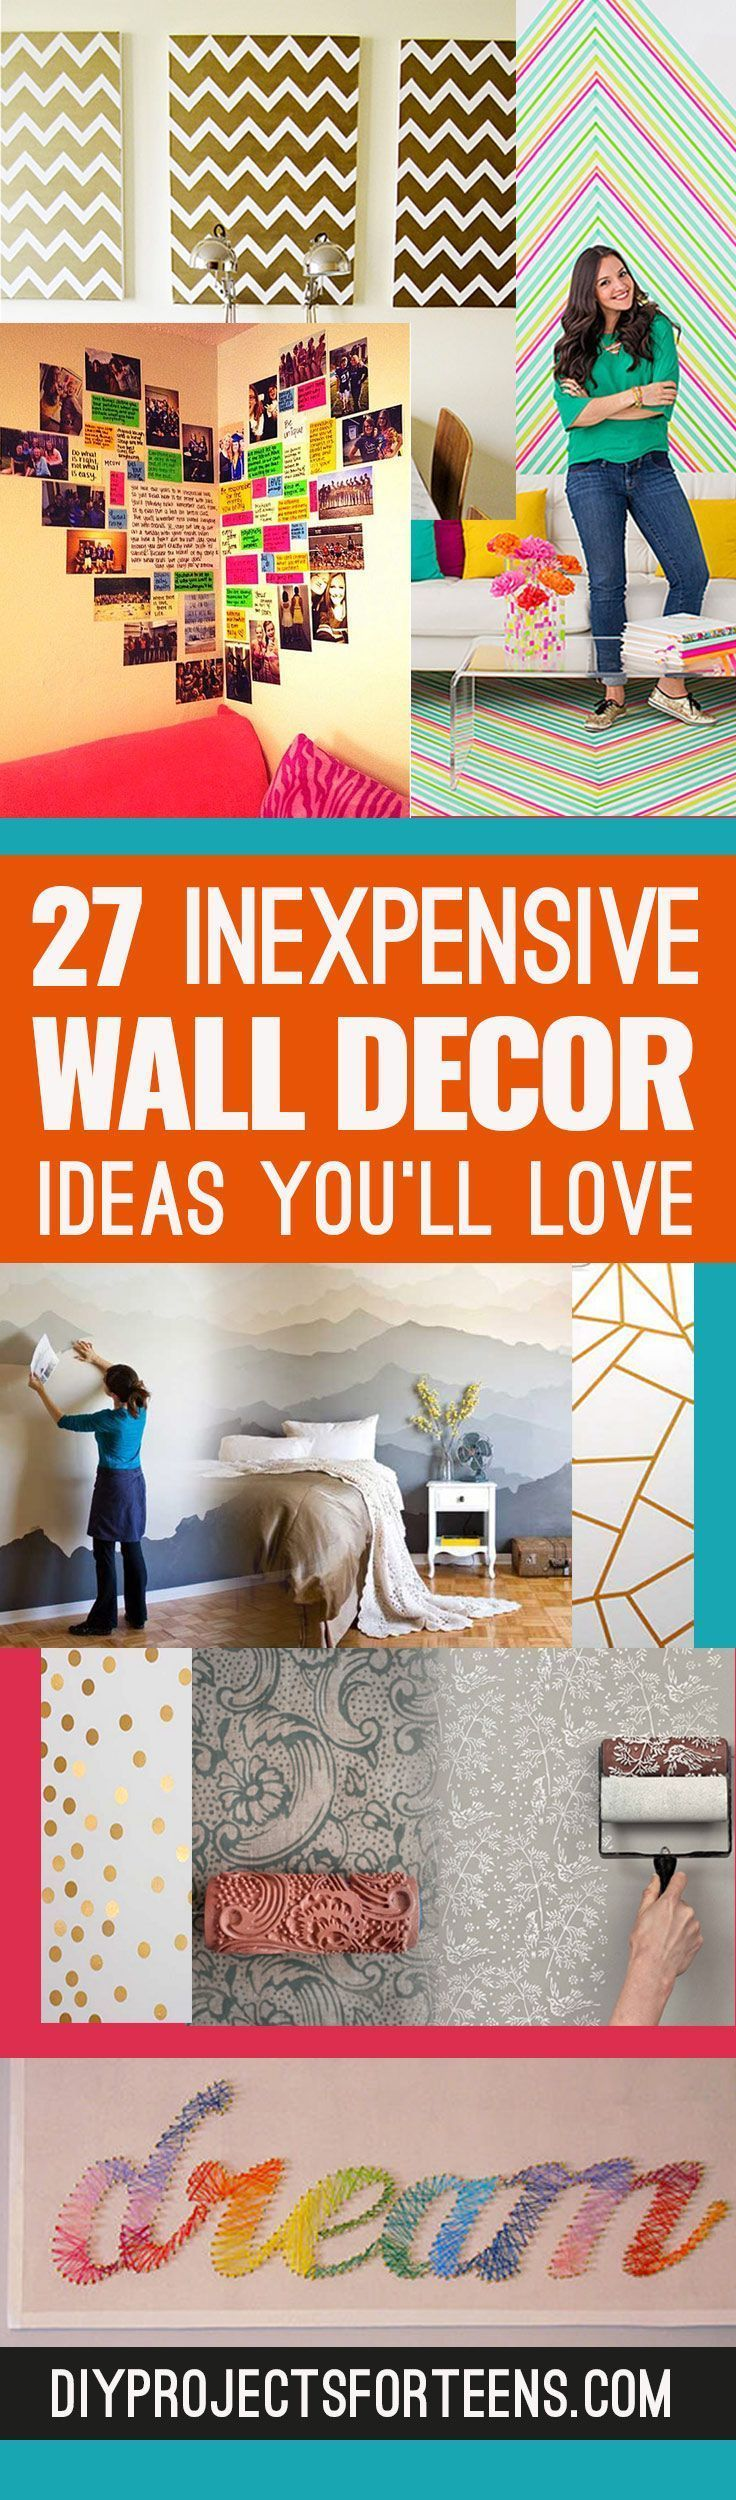 Cute Diy Wall Art Ideas You 39 Ll Love Creative Room Decor